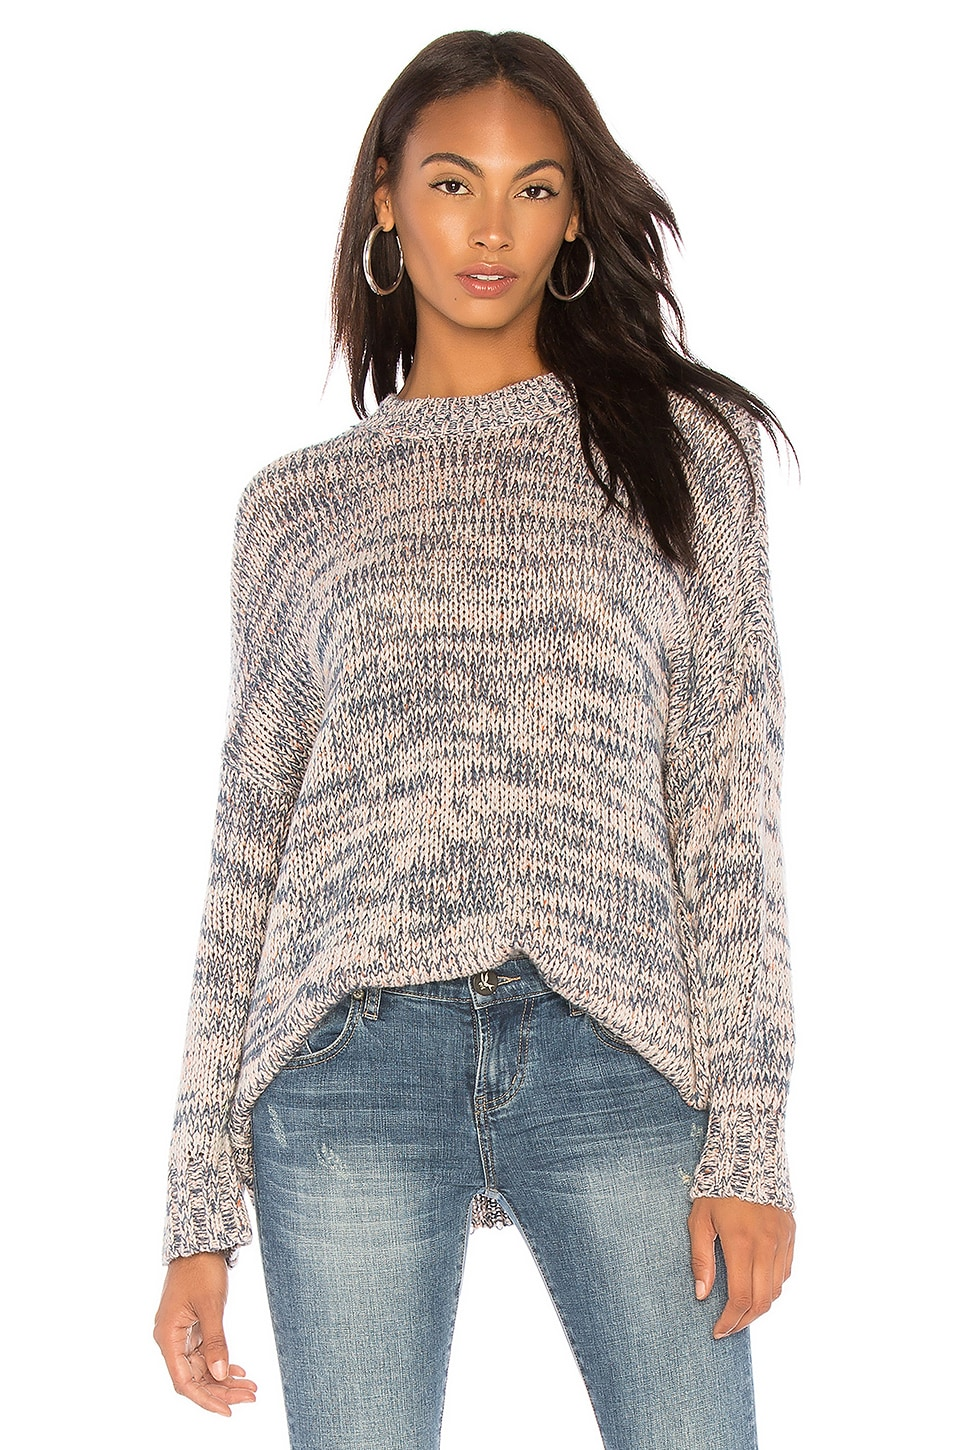 One Teaspoon Hackney Oversized Sweater in Multi